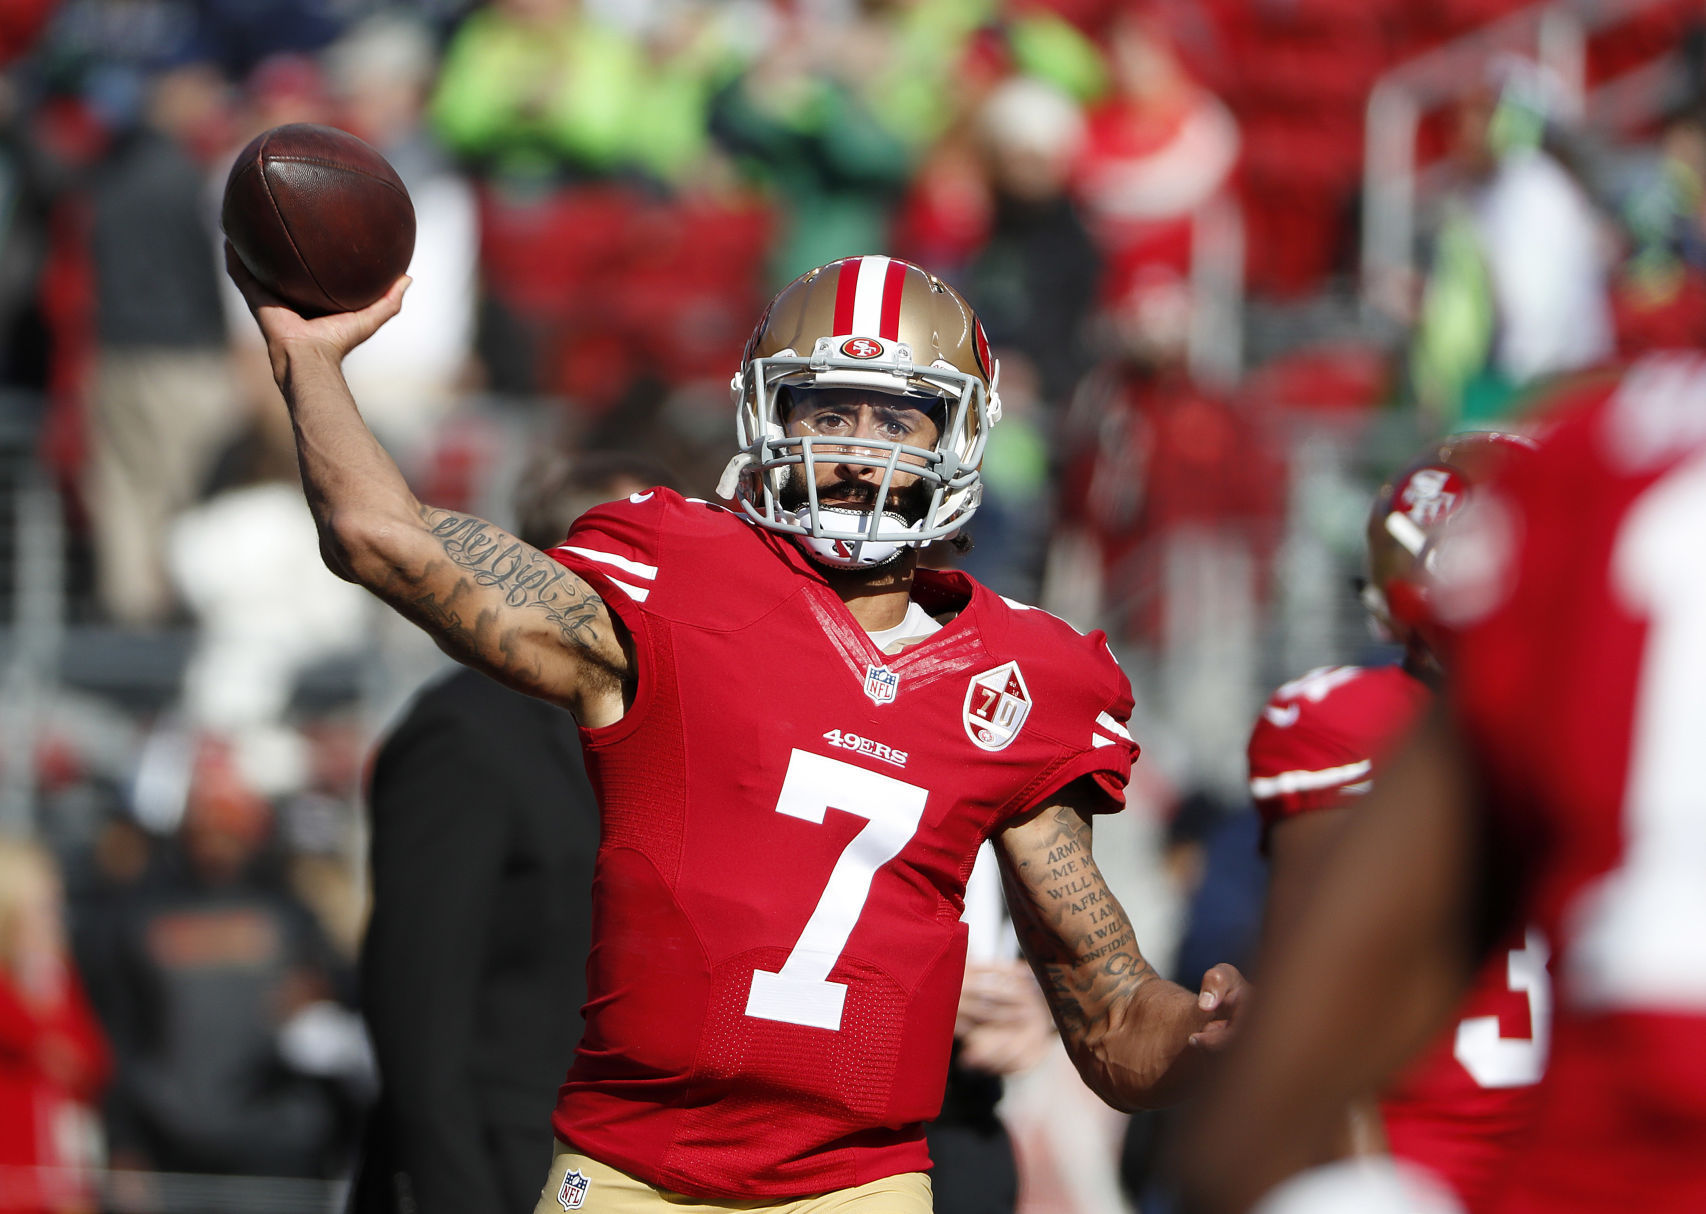 Regrets Kaepernick Hair Comments